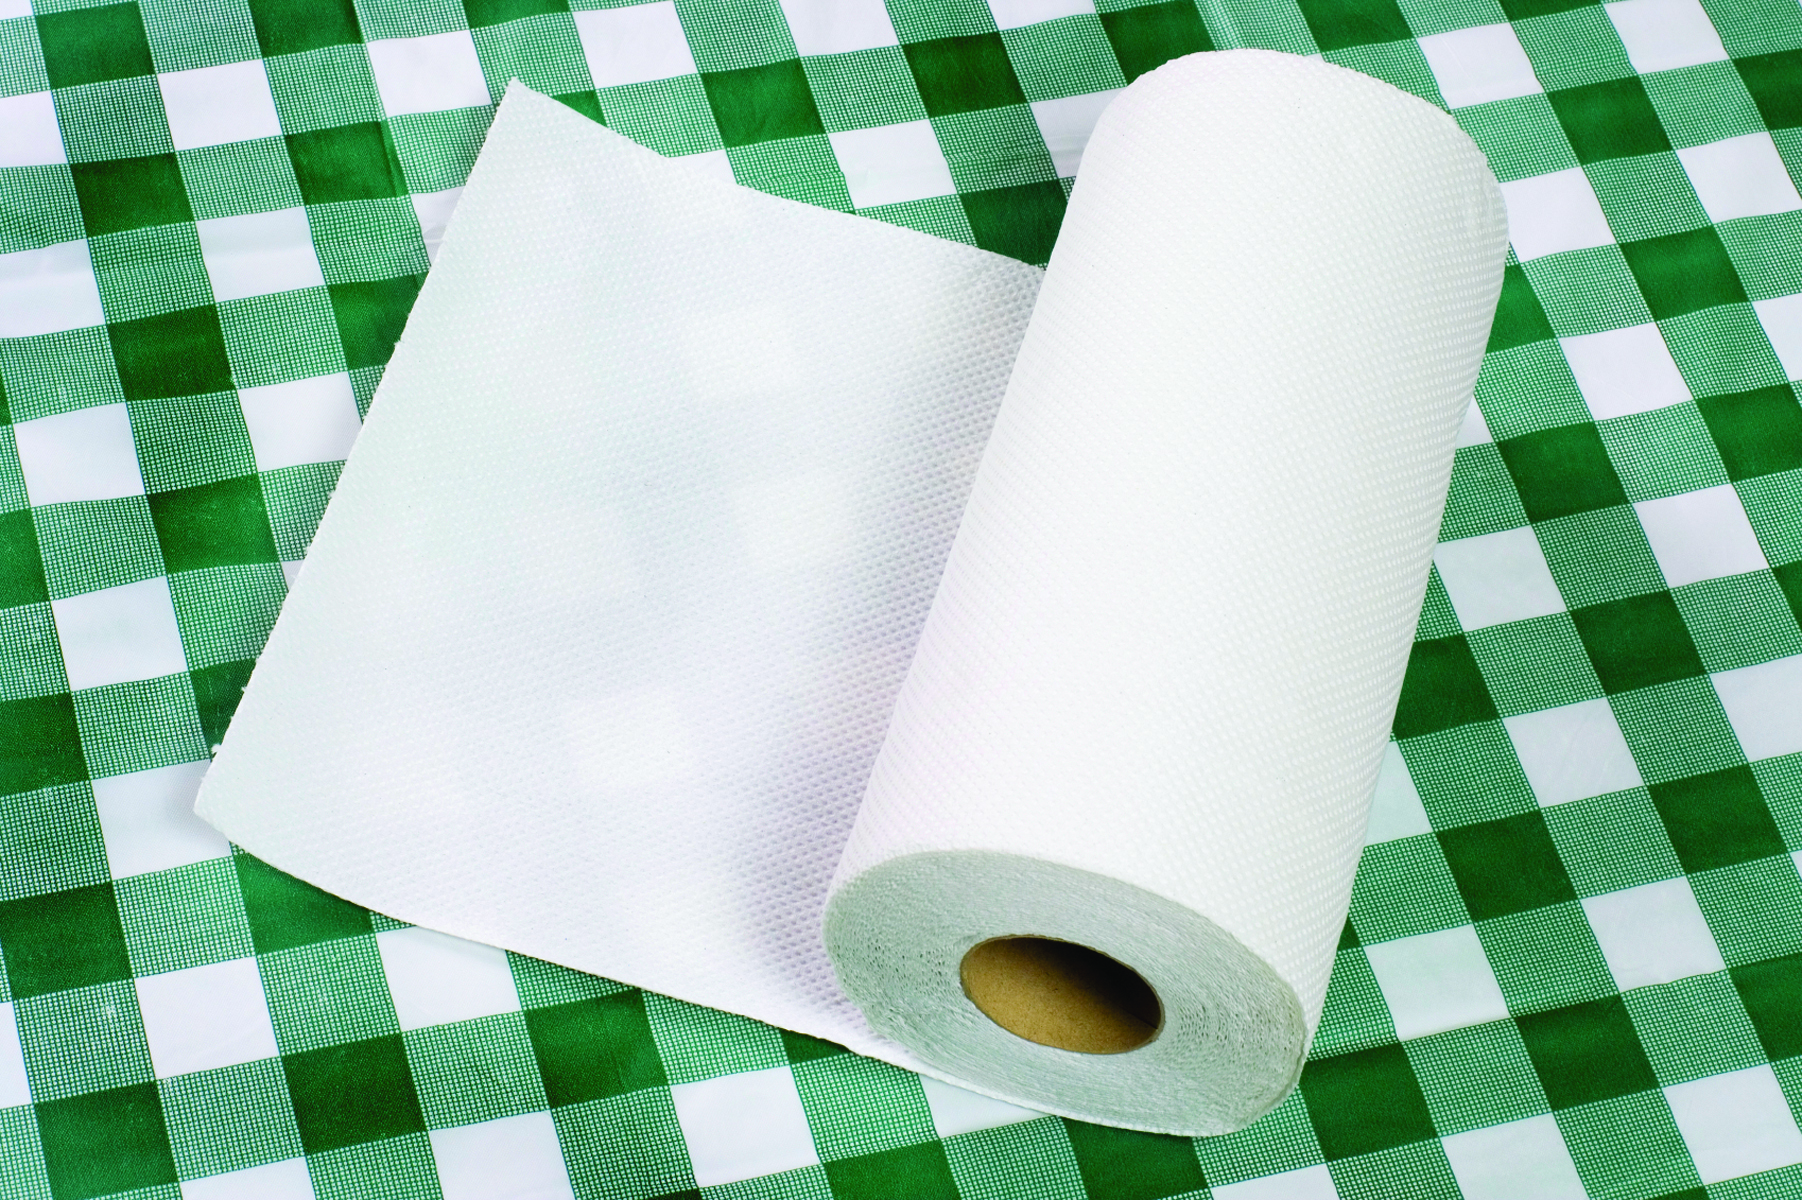 paper towel absorption research